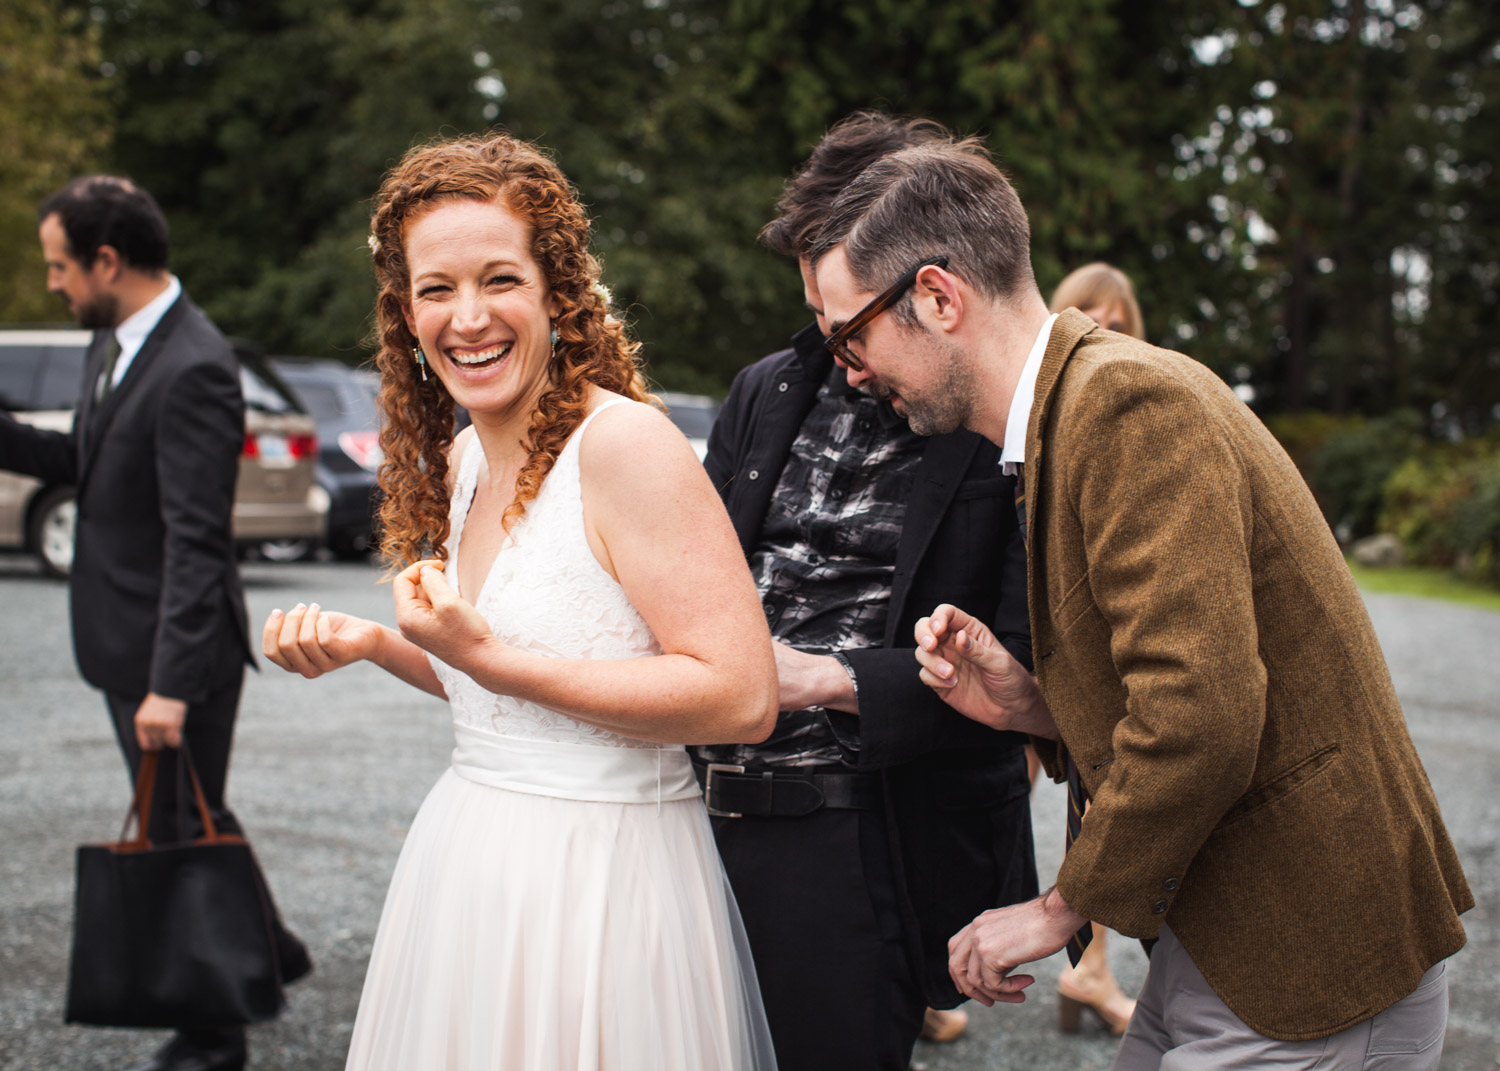 Portland-Wedding-Photographers-Candid_010.jpg